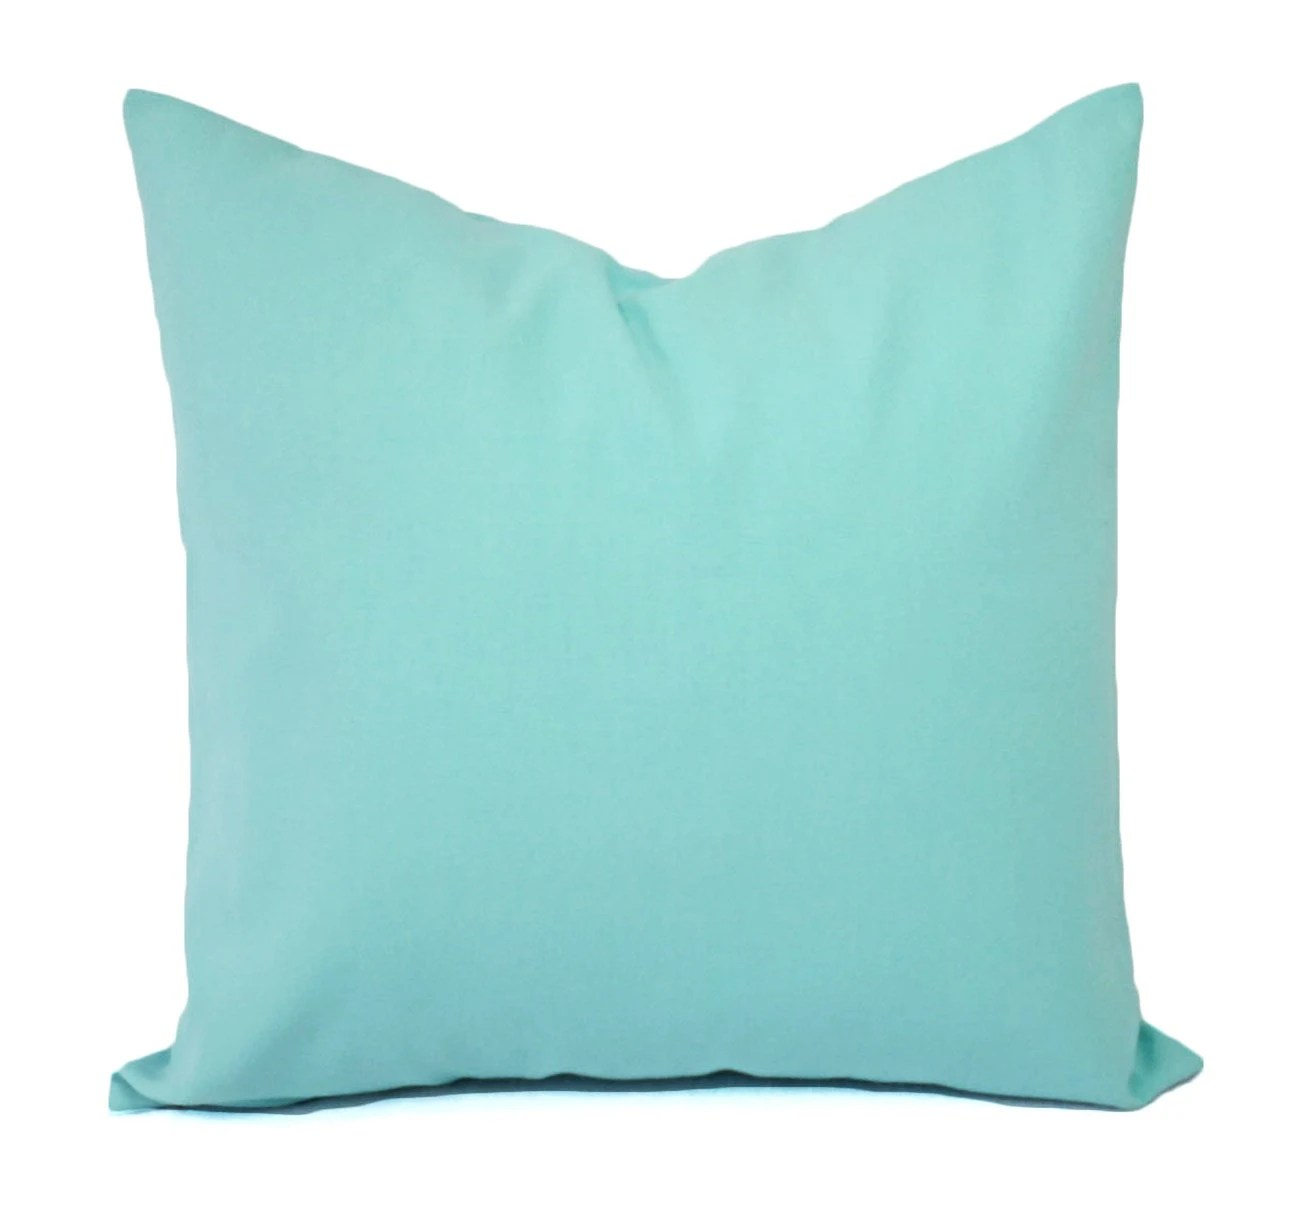 Two Aqua Pillow Covers Solid Teal Throw Pillows Aqua Couch